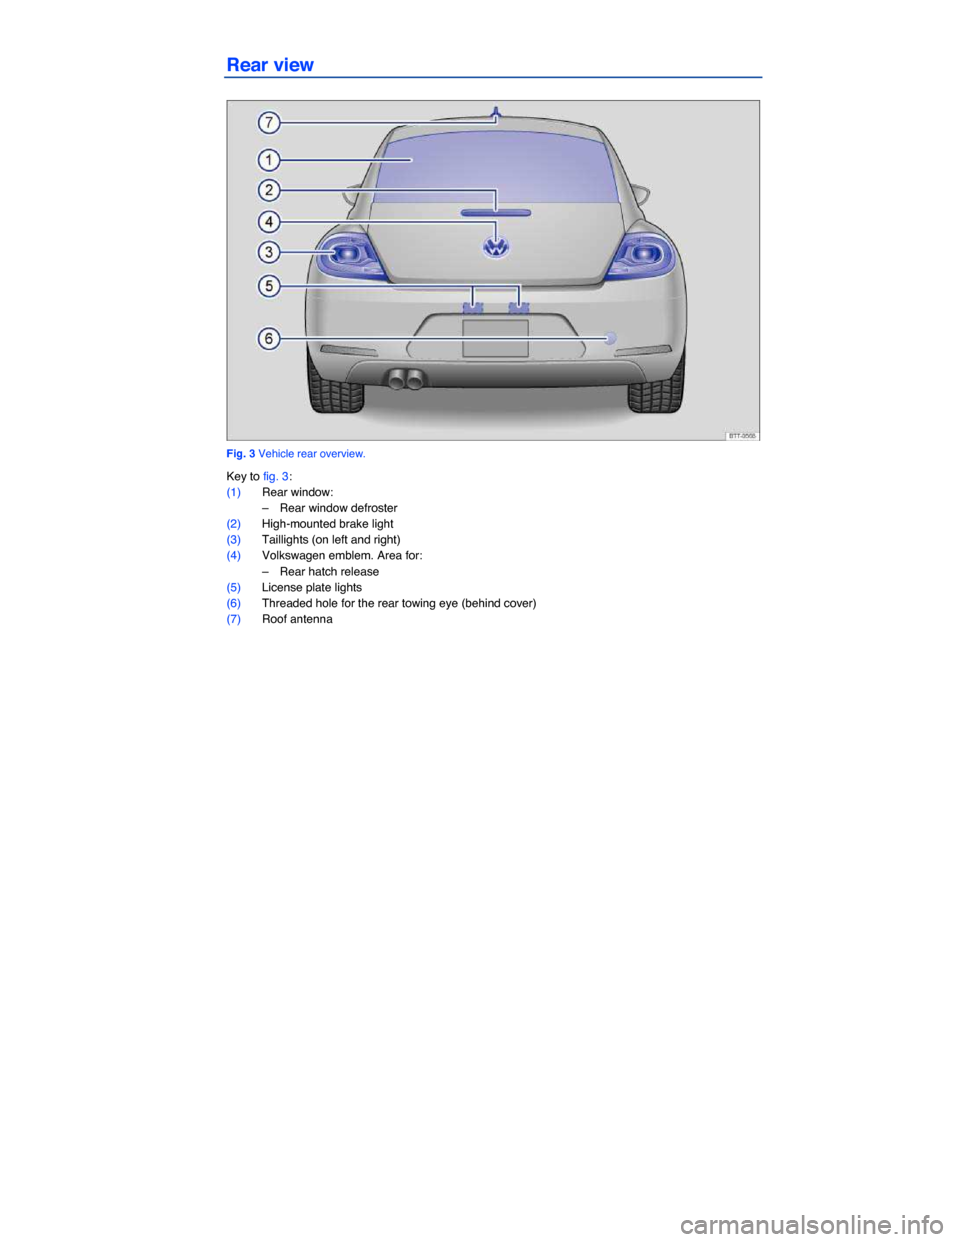 VOLKSWAGEN BEETLE 2015 3.G Owners Manual   Rear view    Fig. 3 Vehicle rear overview.  Key to fig. 3:  (1) Rear window:  –  Rear window defroster   (2) High-mounted brake light   (3) Taillights (on left and right)   (4) Volkswagen emblem.